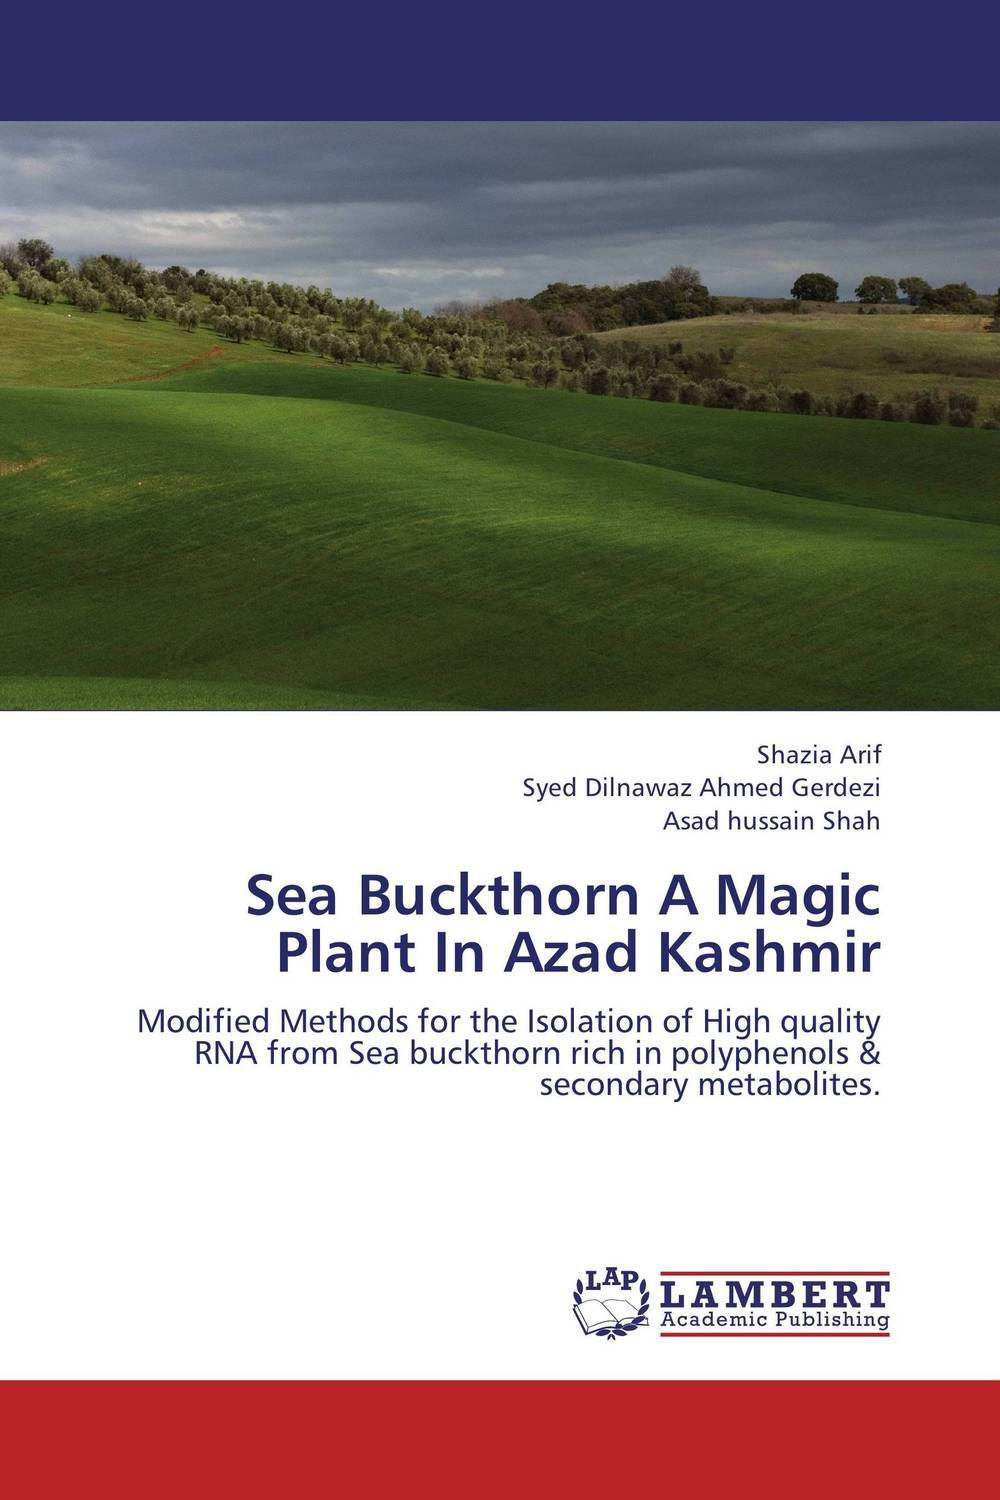 Sea Buckthorn A Magic Plant In Azad Kashmir phenolic compounds from mongolian medicinal plants